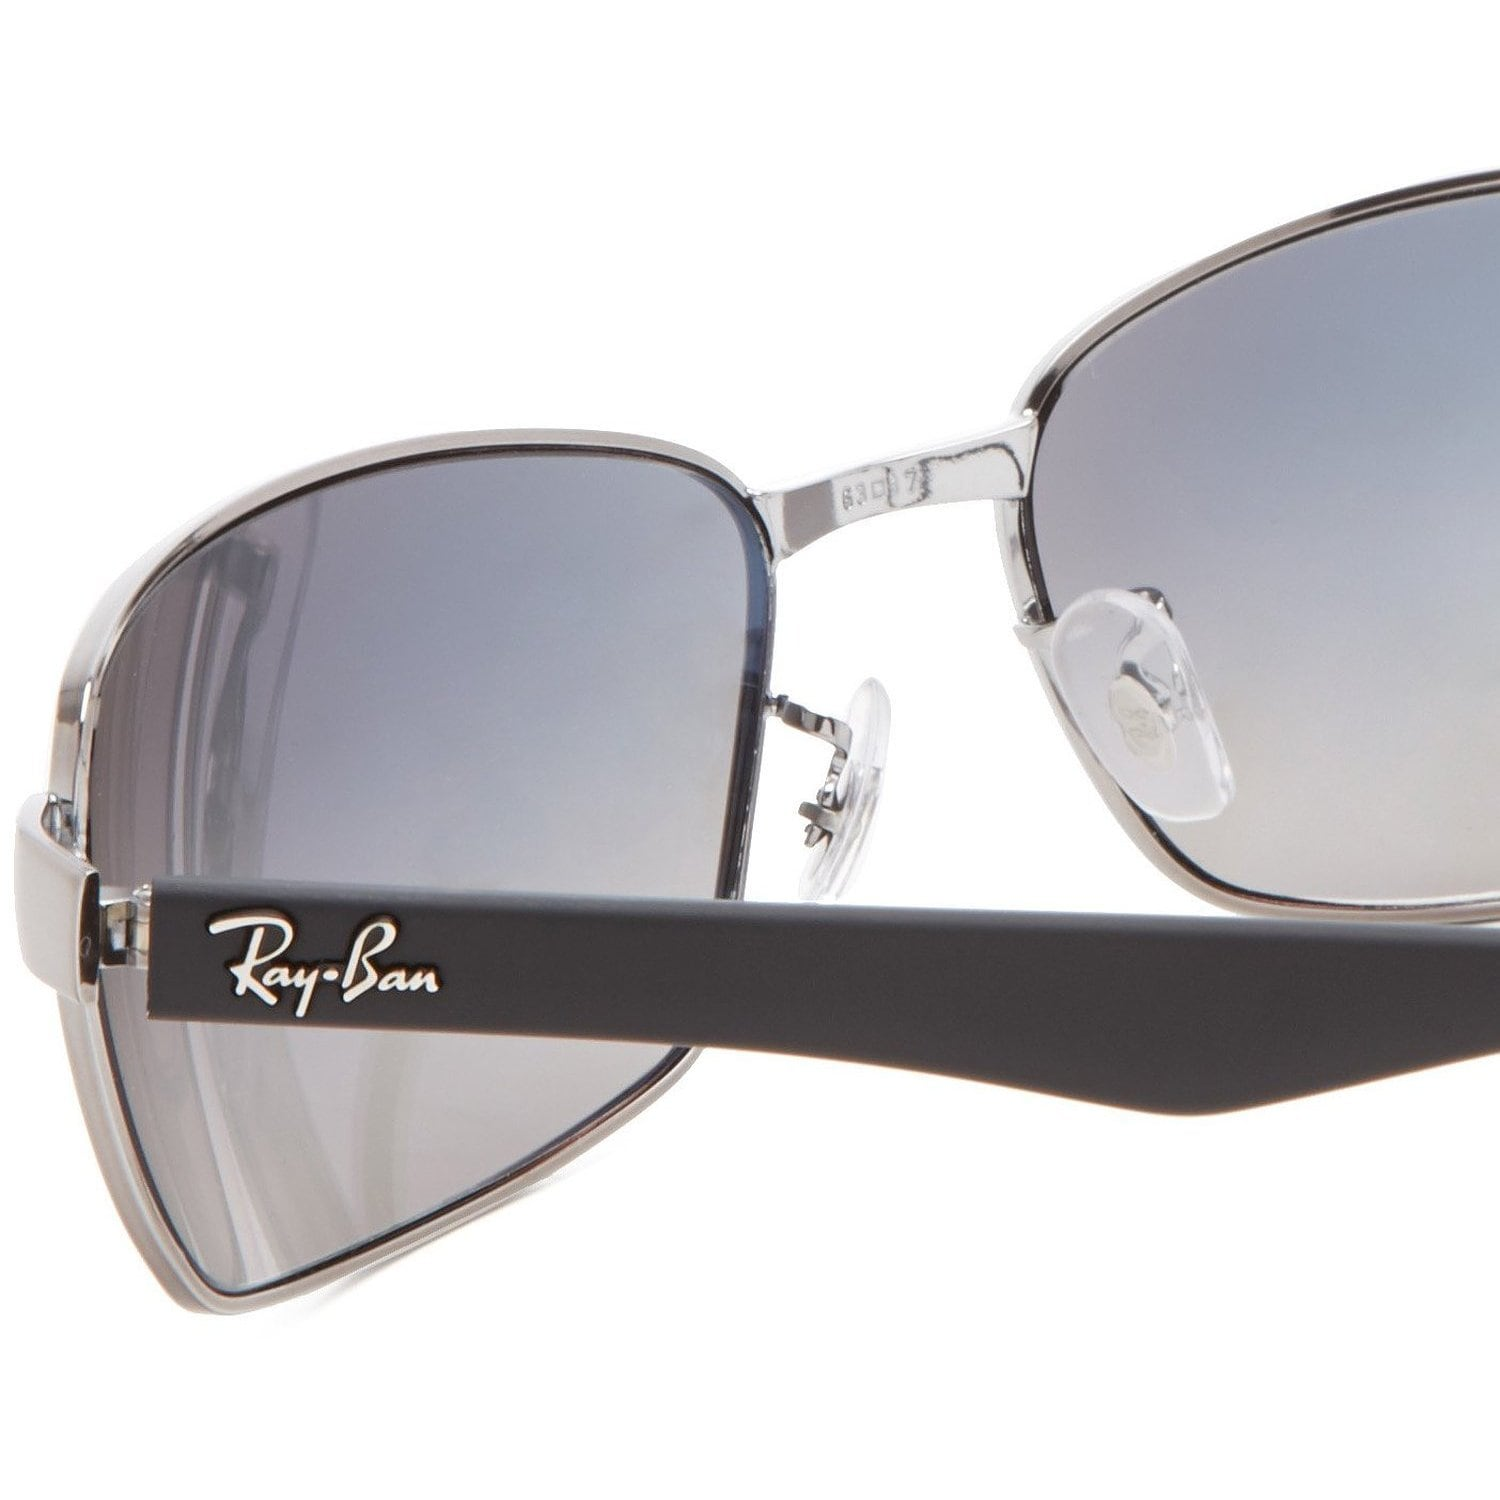 339d6e316ae Shop Ray-Ban RB3478 004 78 Gunmetal Black Frame Polarized Blue Grey Gradient  63mm Lens Sunglasses - Free Shipping Today - Overstock - 14442251